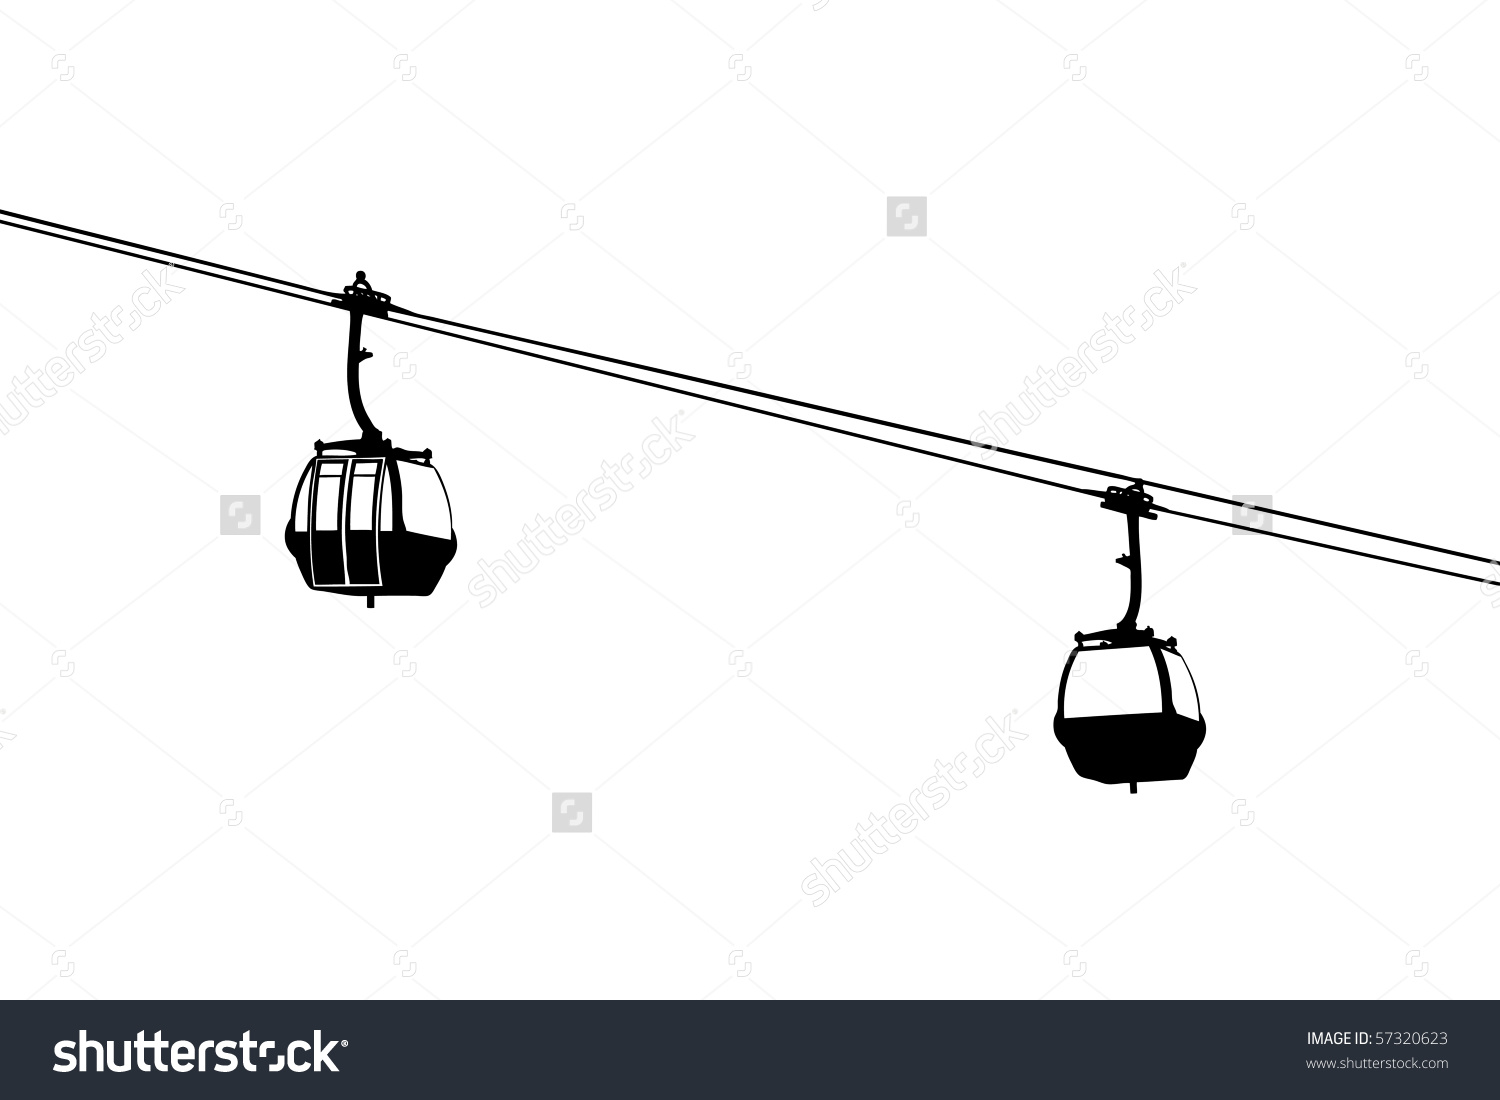 Silhouette Two Aircable Cabins Isolated On Stock Illustration.